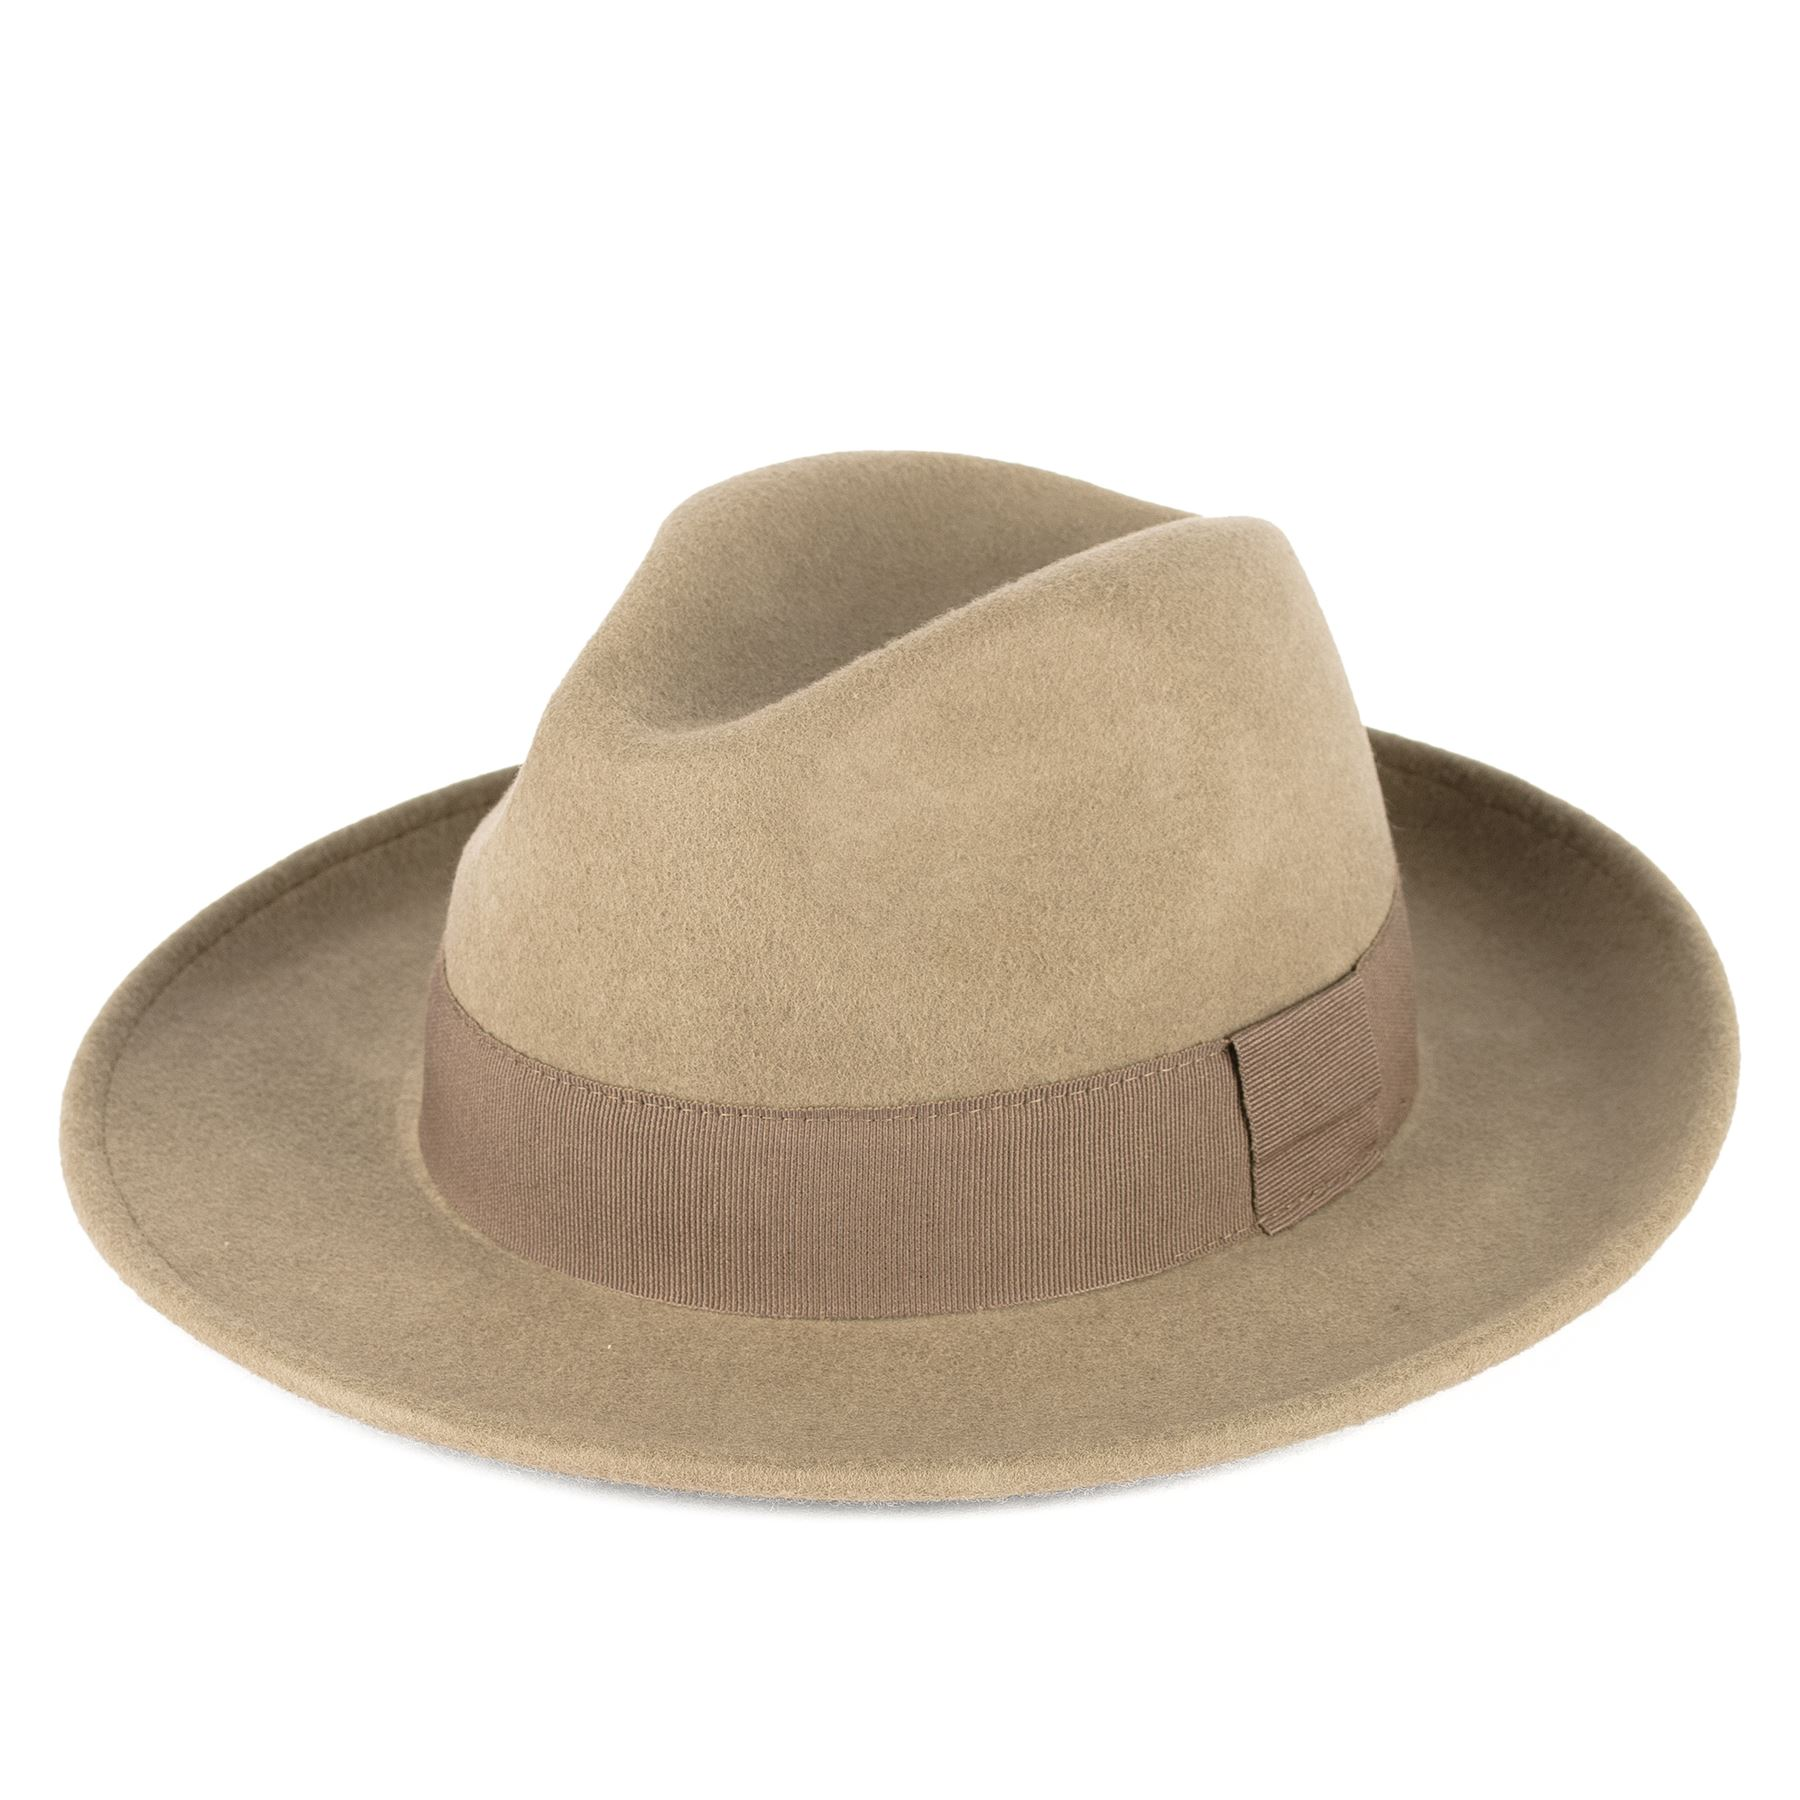 Shop eBay for great deals on Beige Straw Fedora Hats for Men. You'll find new or used products in Beige Straw Fedora Hats for Men on eBay. Free shipping on selected items.